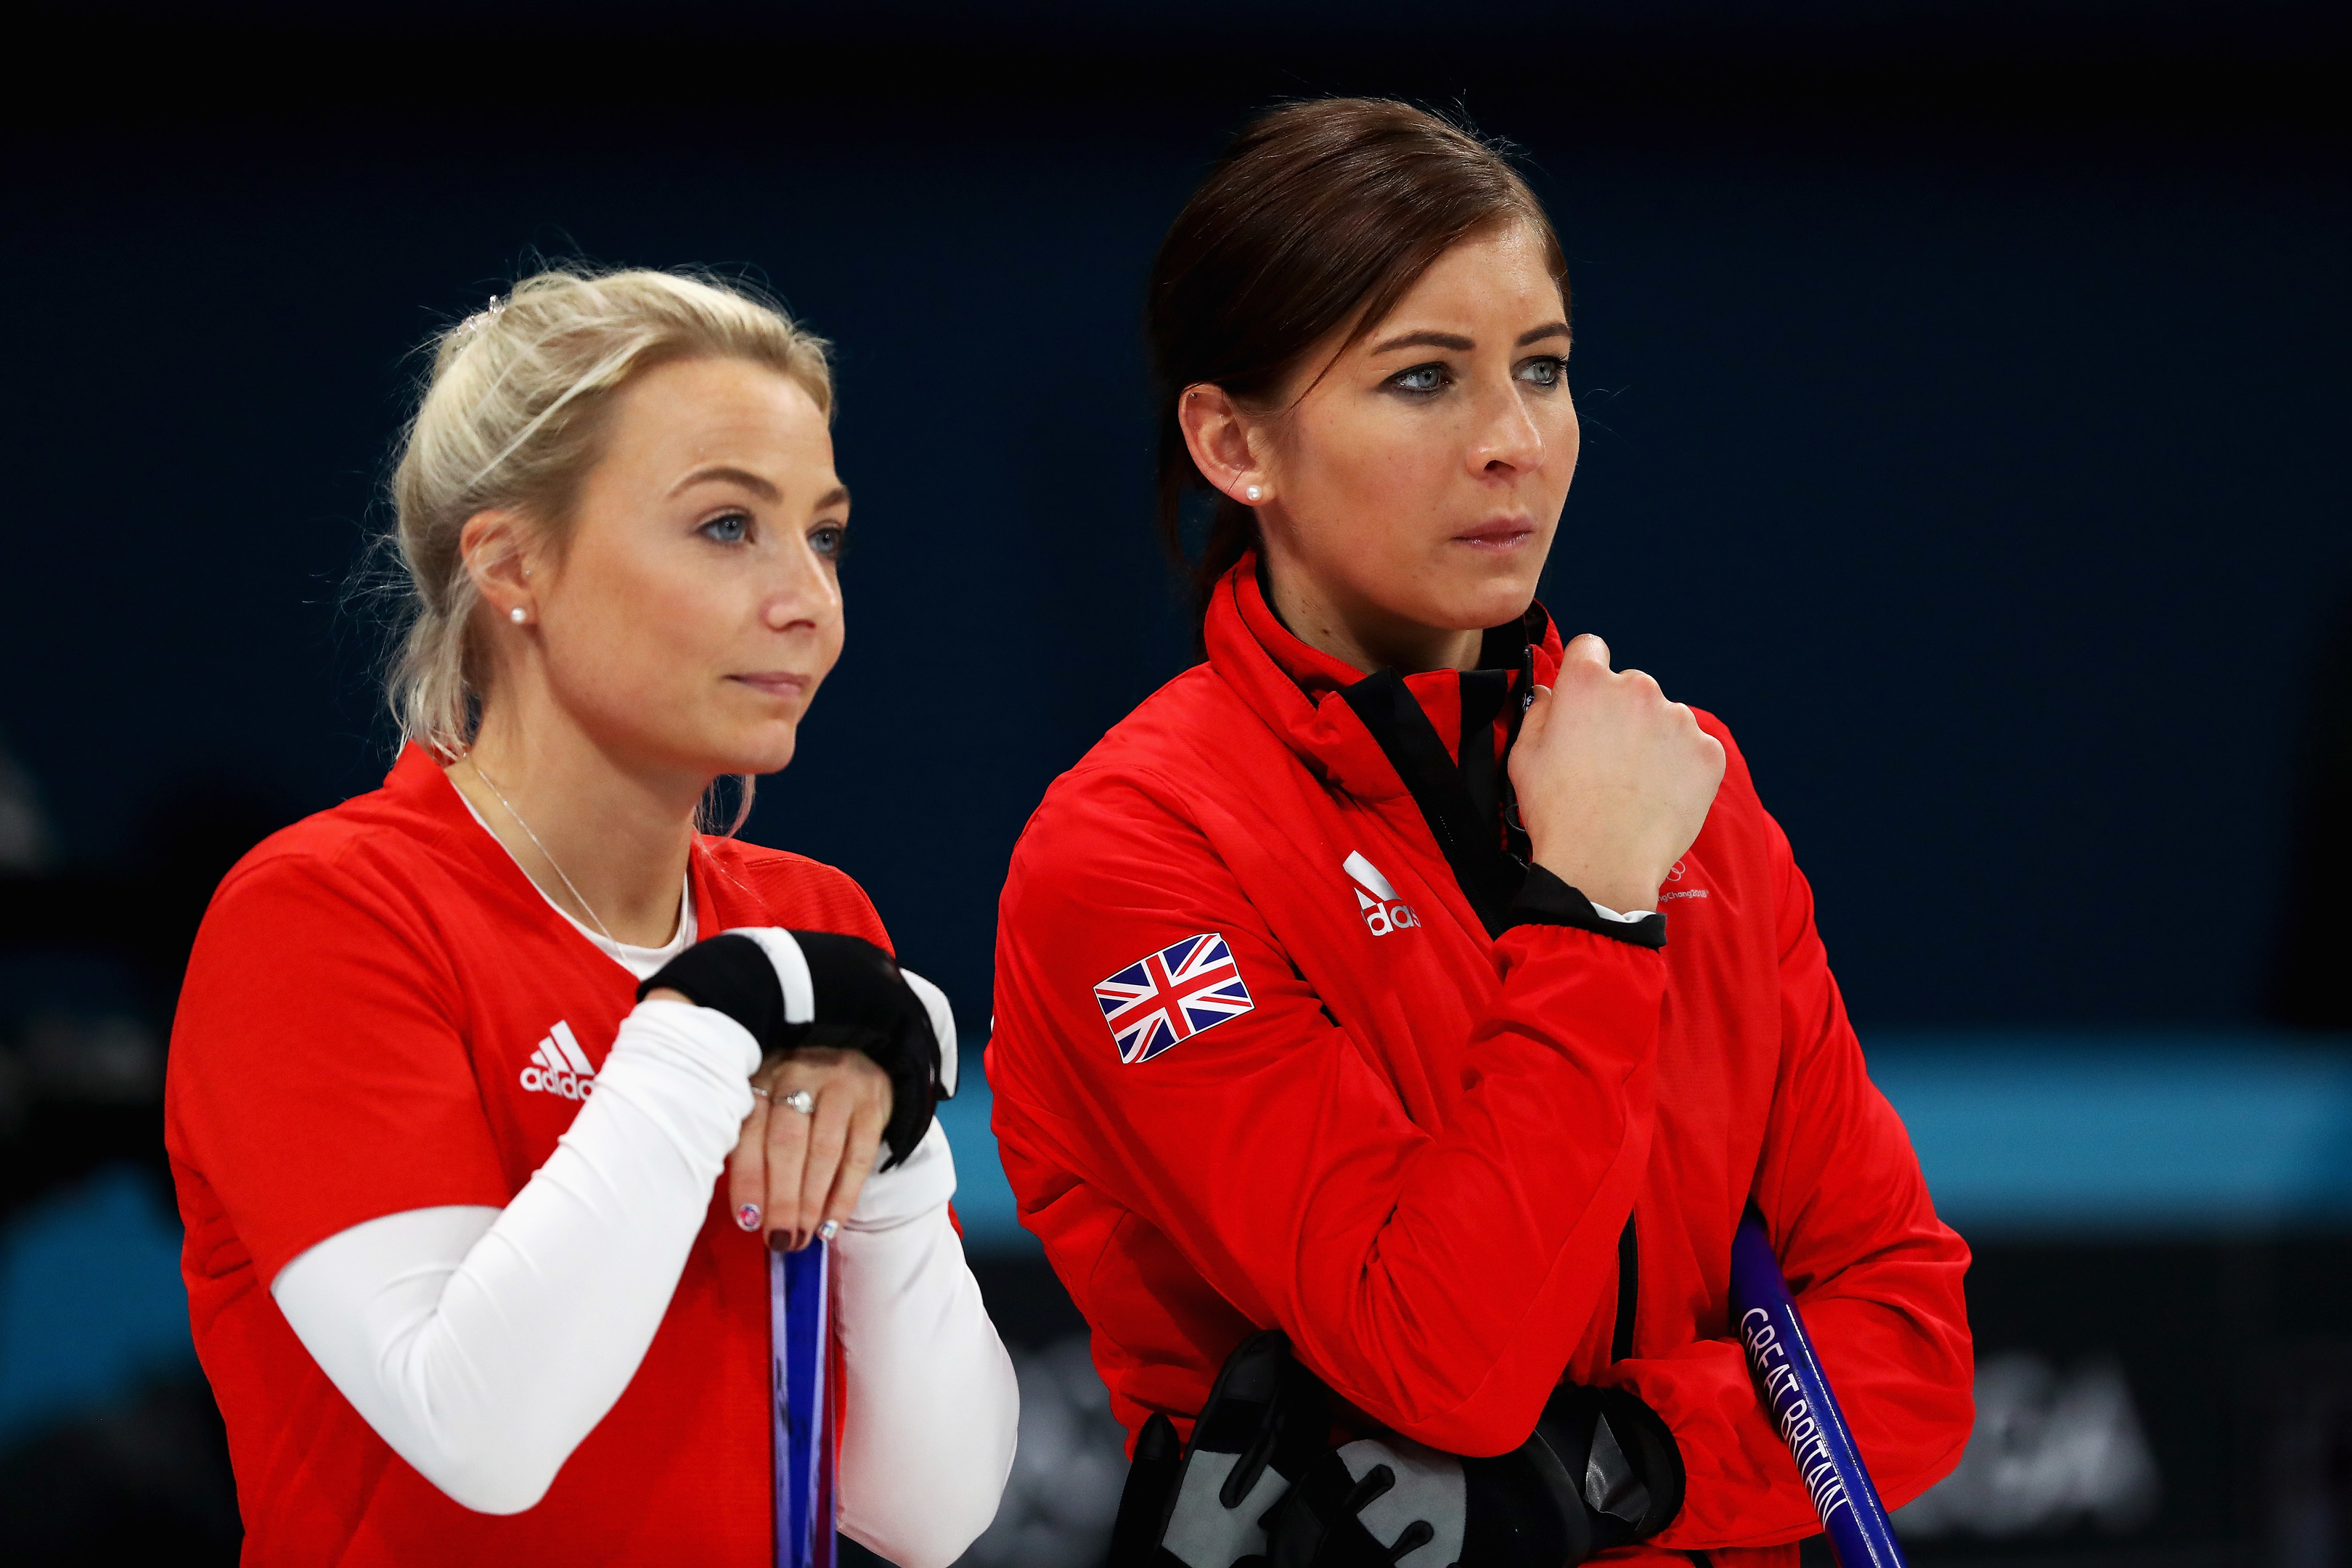 GB curlers Anna Sloan and Eve Muirhead (Dean Mouhtaropoulos/Getty Images)